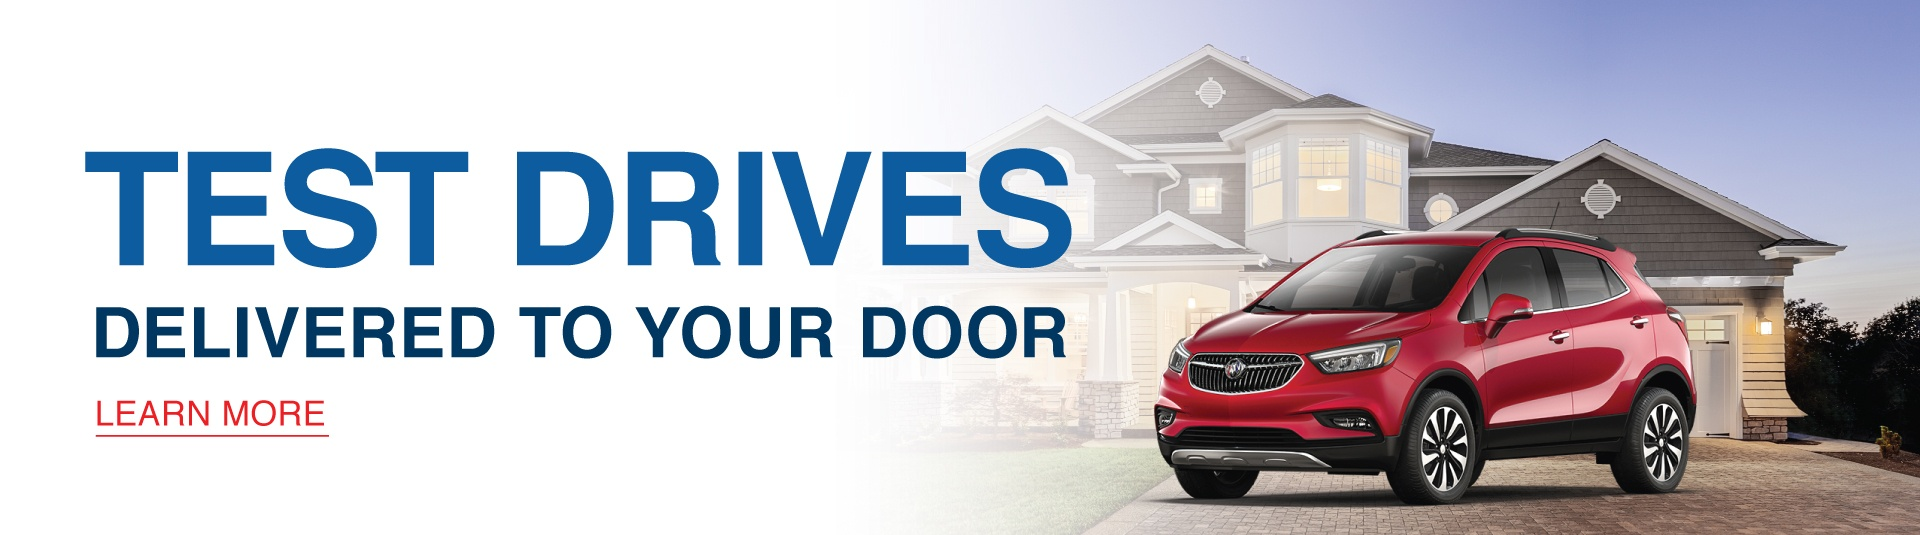 City Buick Test Drive From Home Program